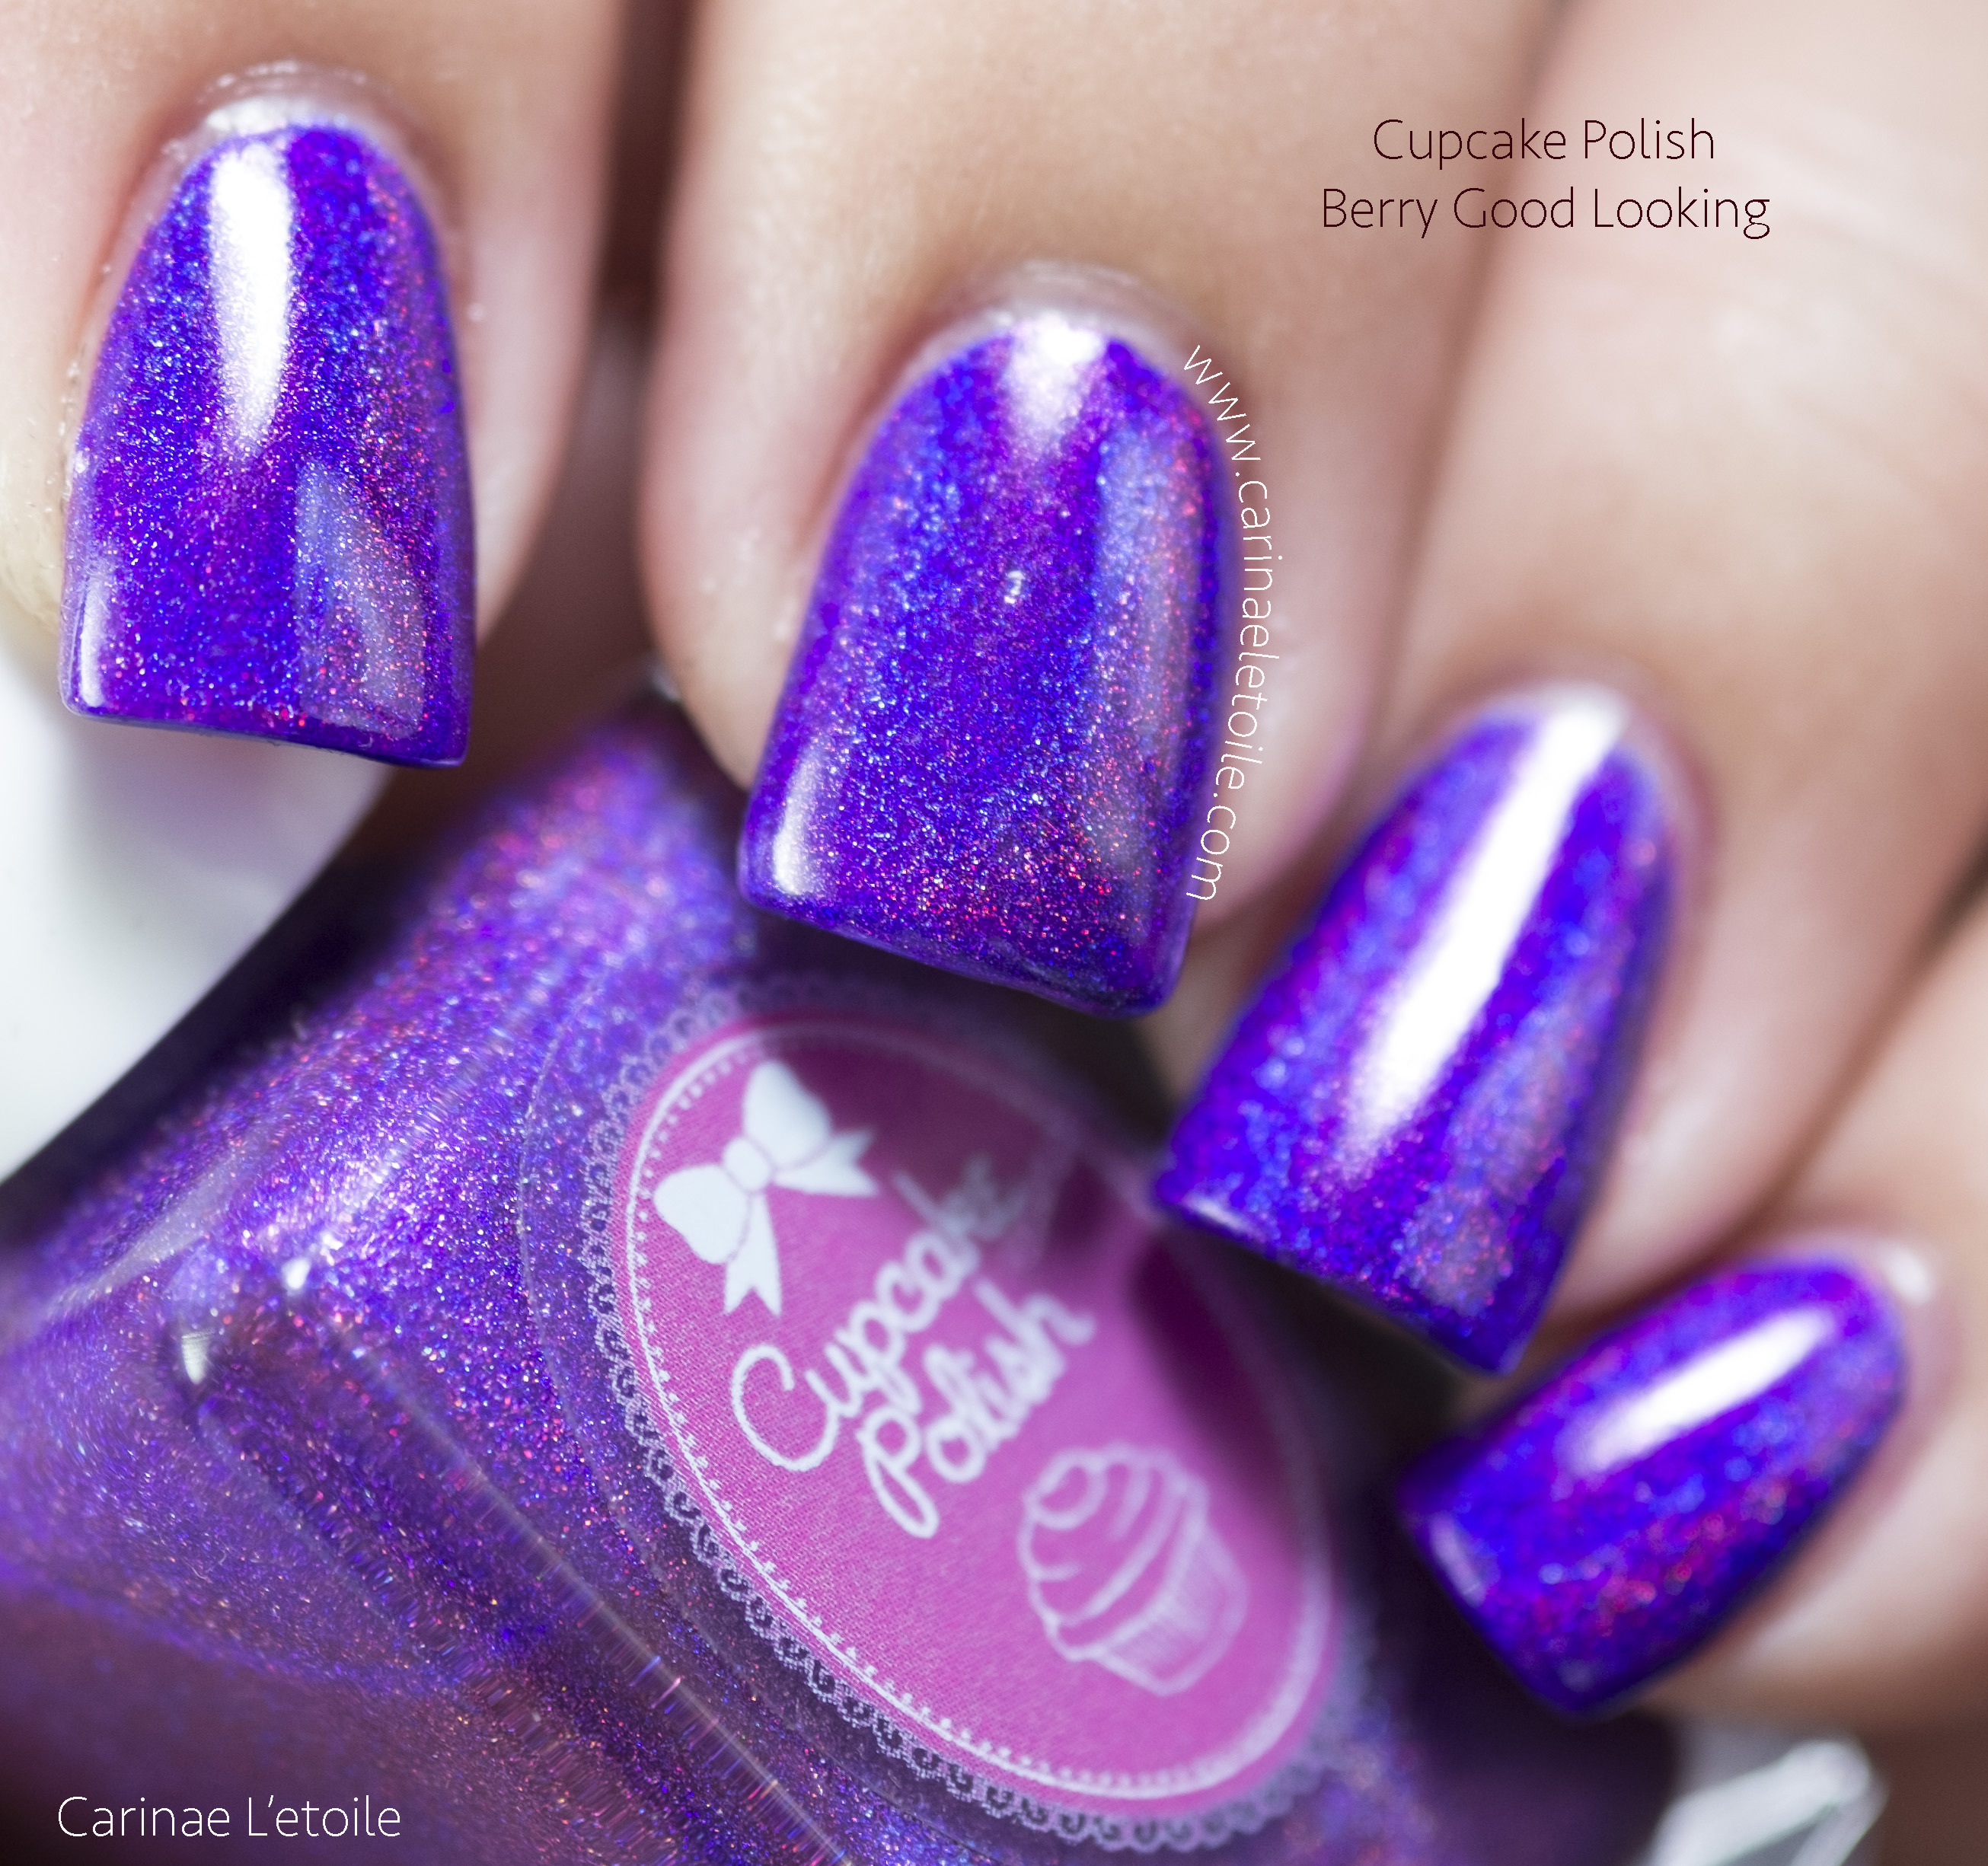 Cupcake Polish Berry Good Looking